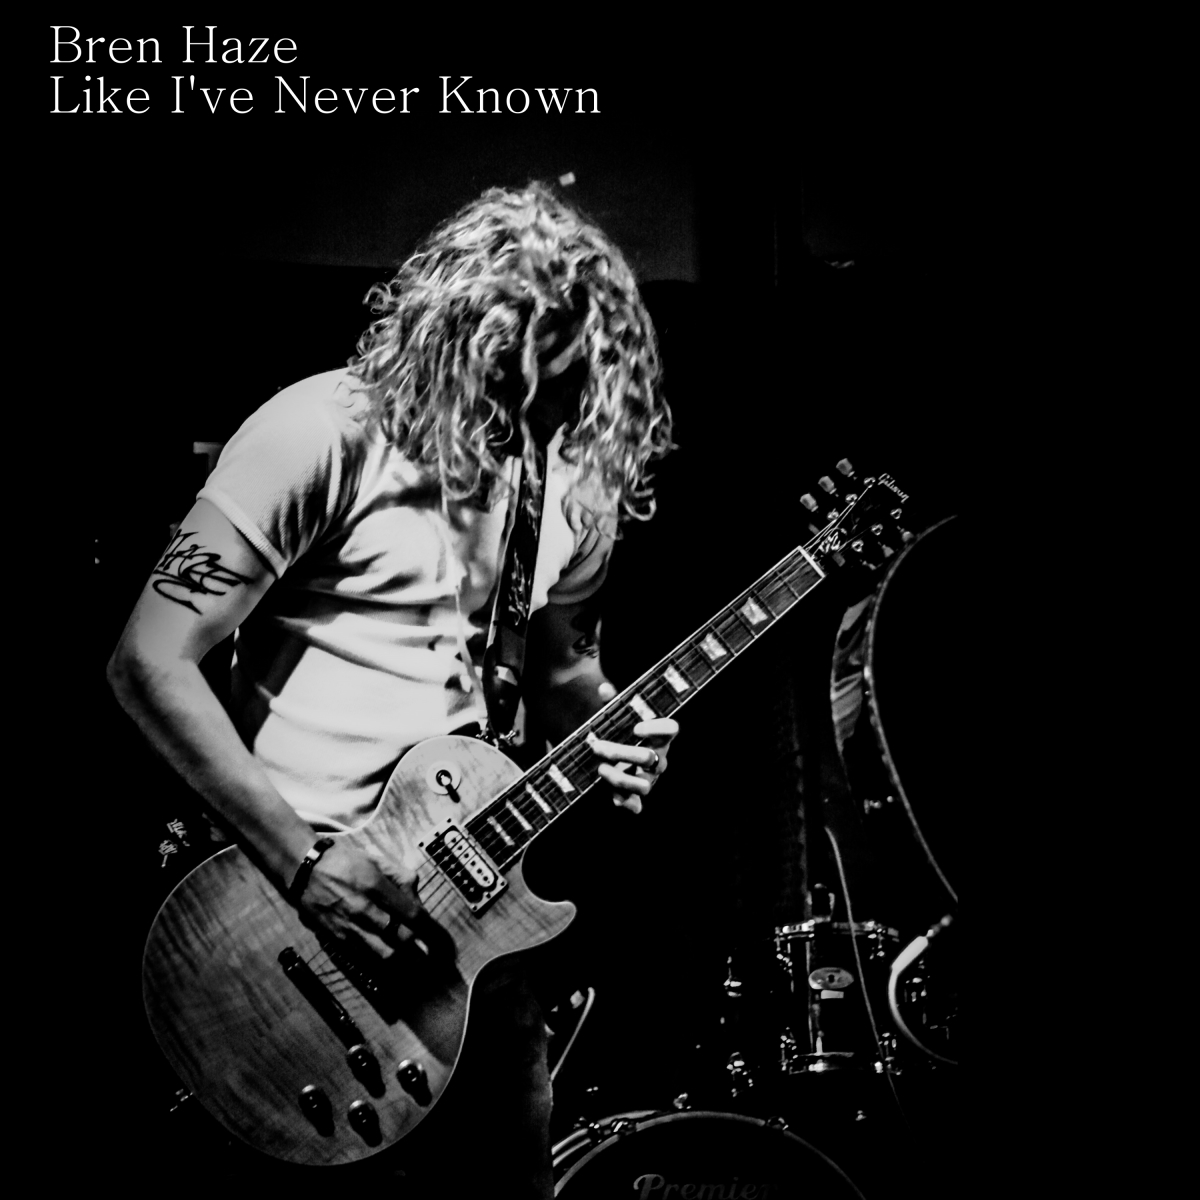 Like I've Never Known - Bren Haze